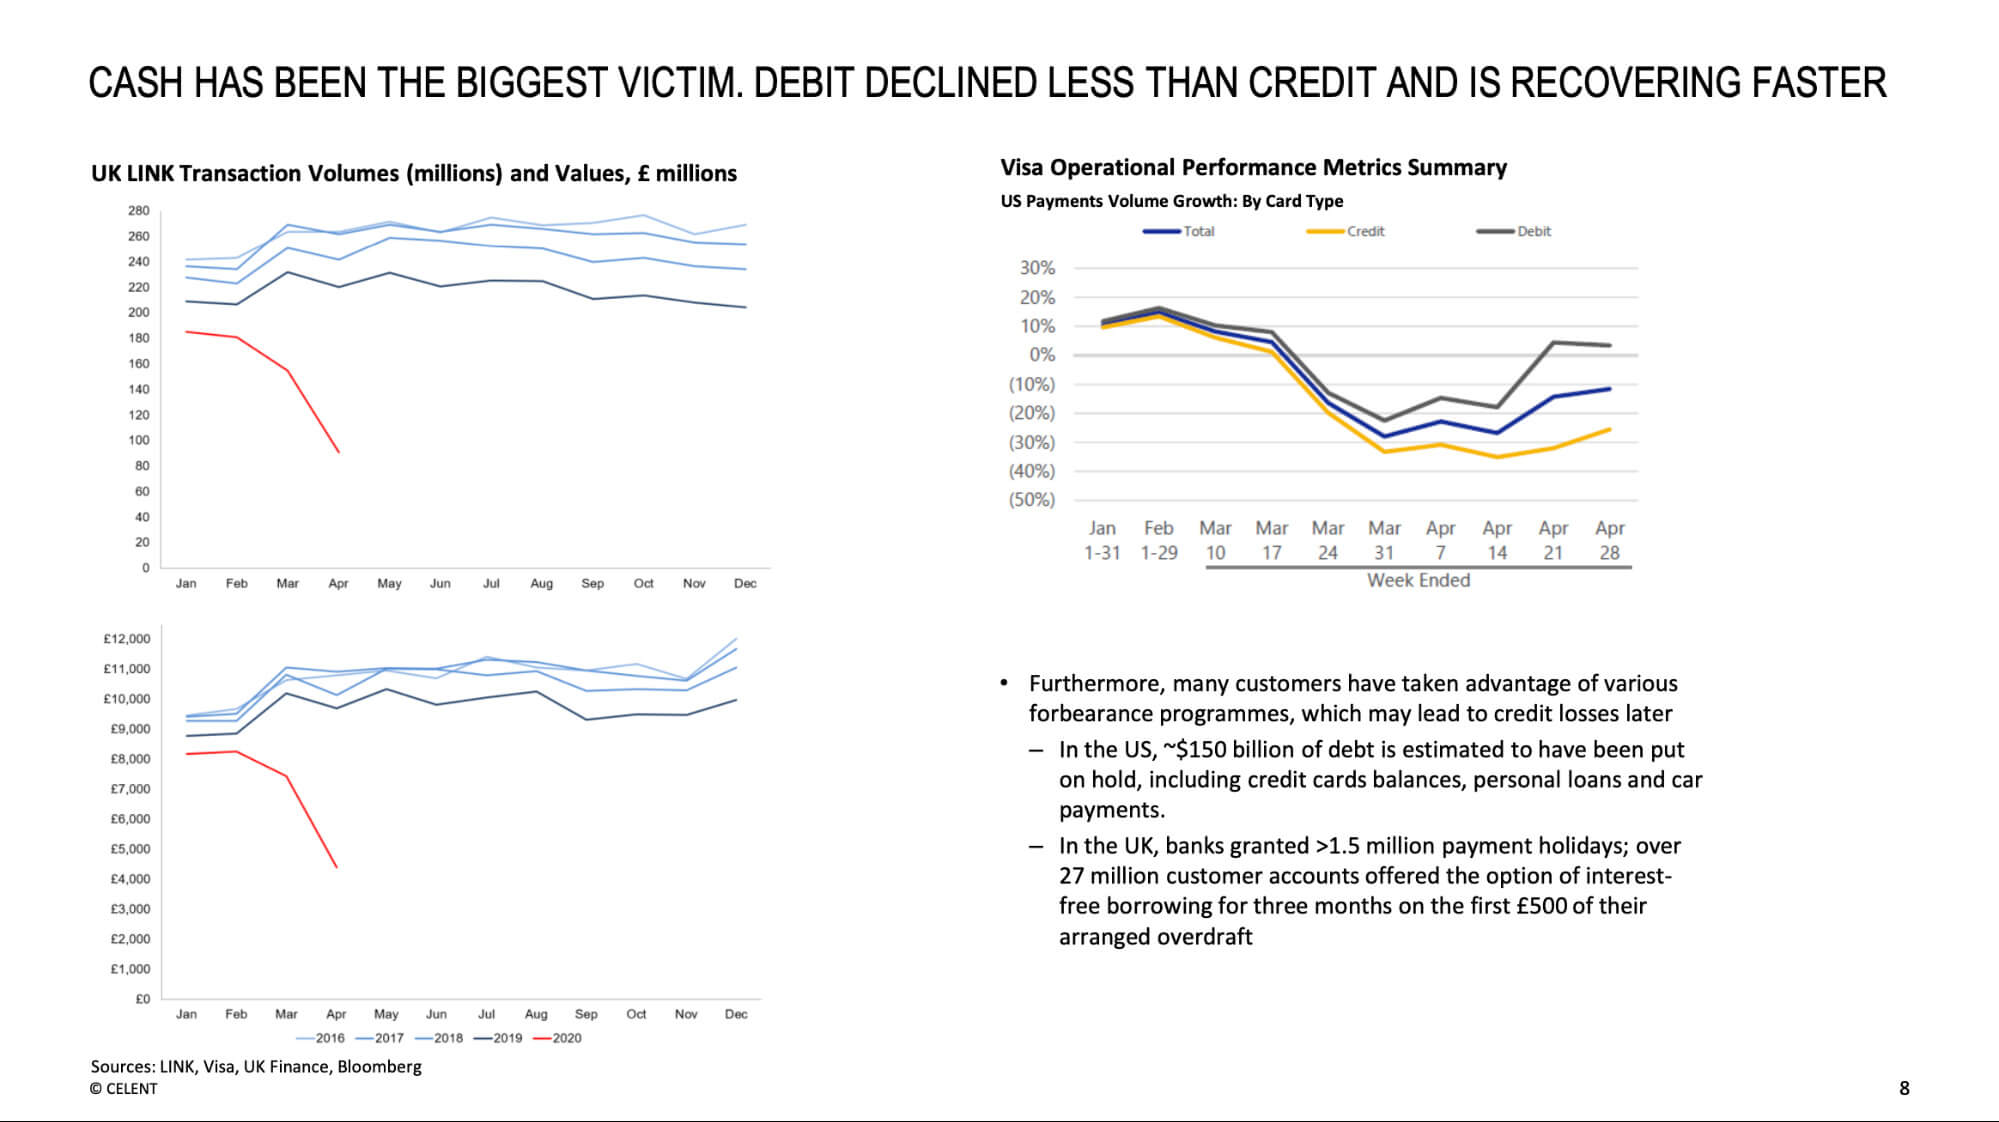 Cash has been the biggest victim, debit declined less than credit and is recovering faster